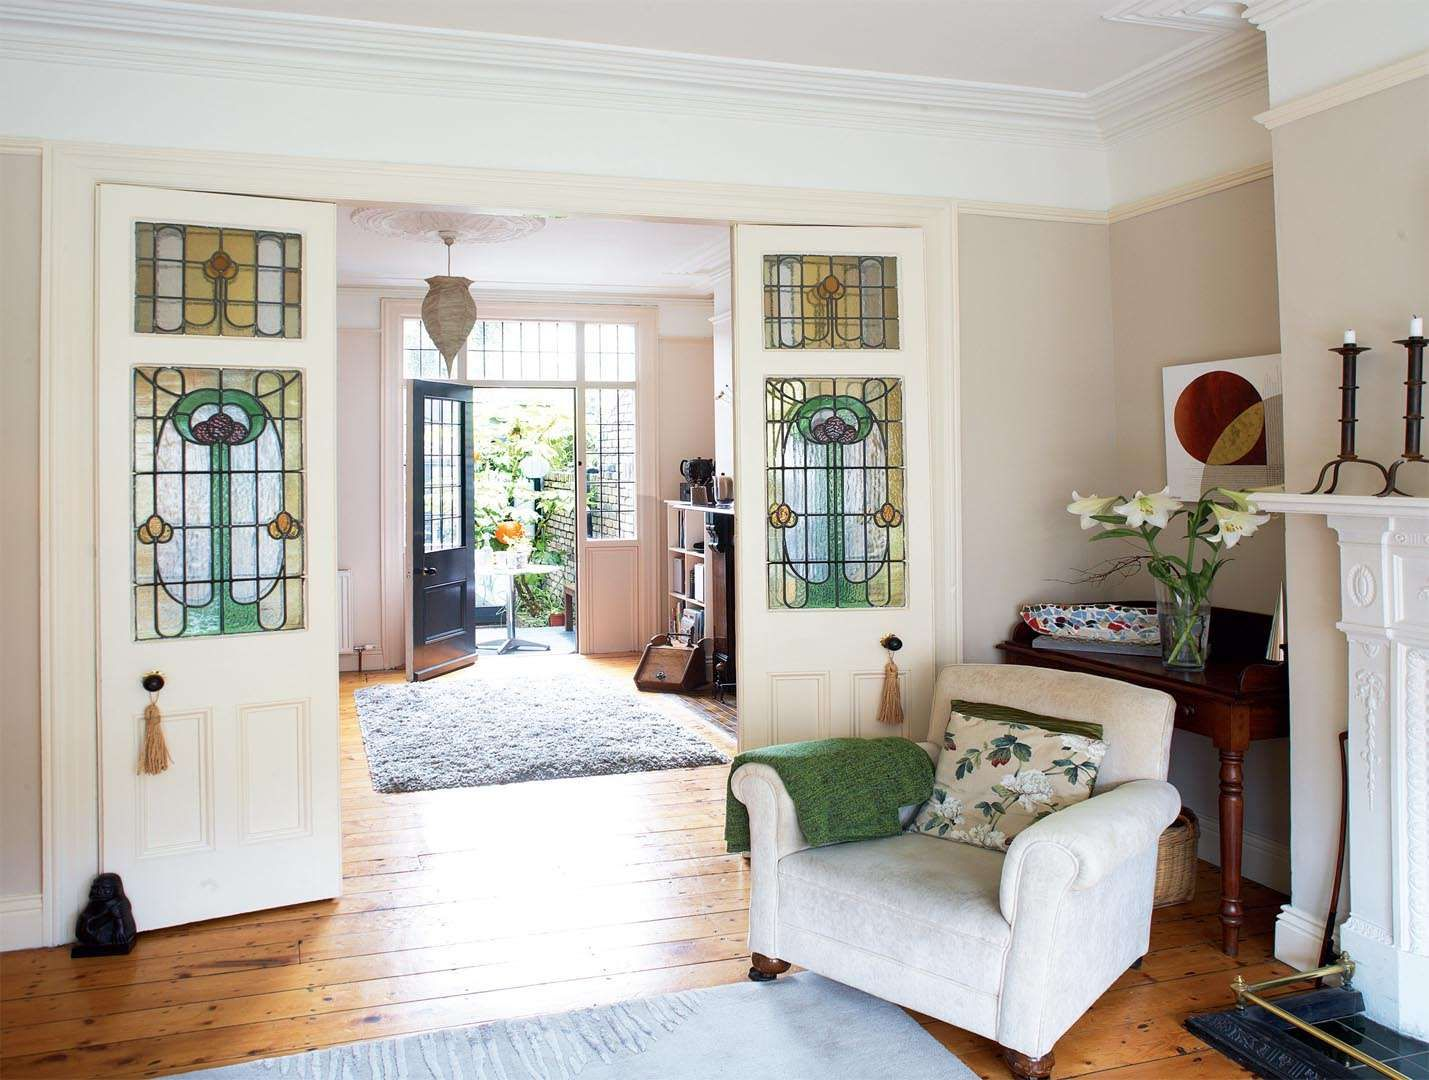 Renovating a victorian townhouse real homes dream for Victorian house interior designs